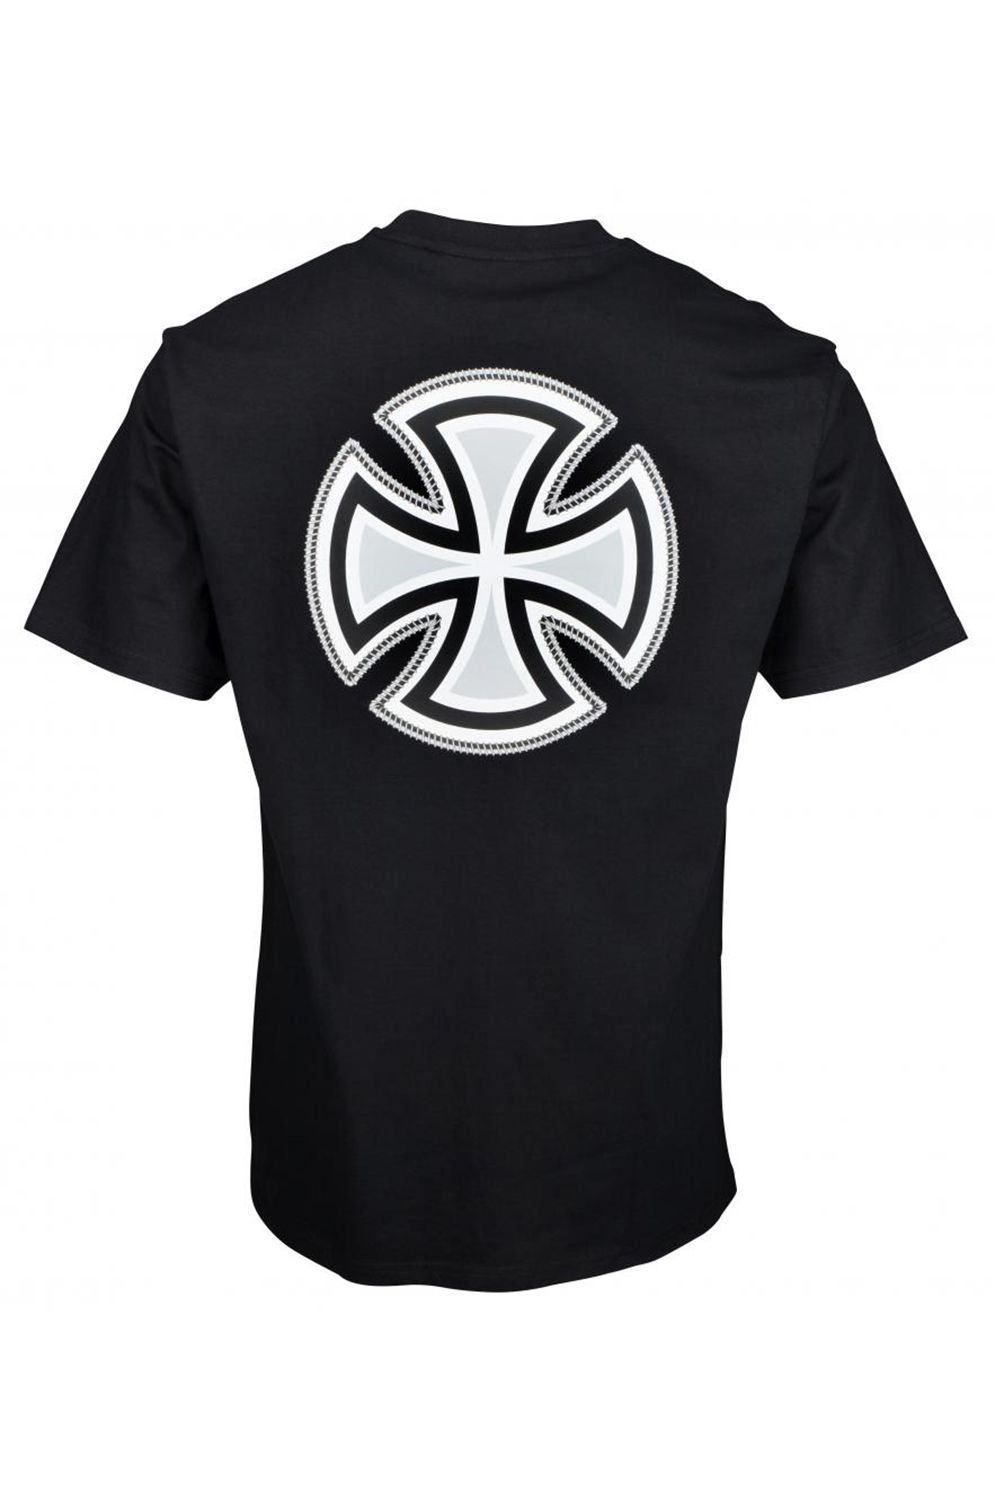 T-Shirt Independent REBAR CROSS T-SHIRT Black